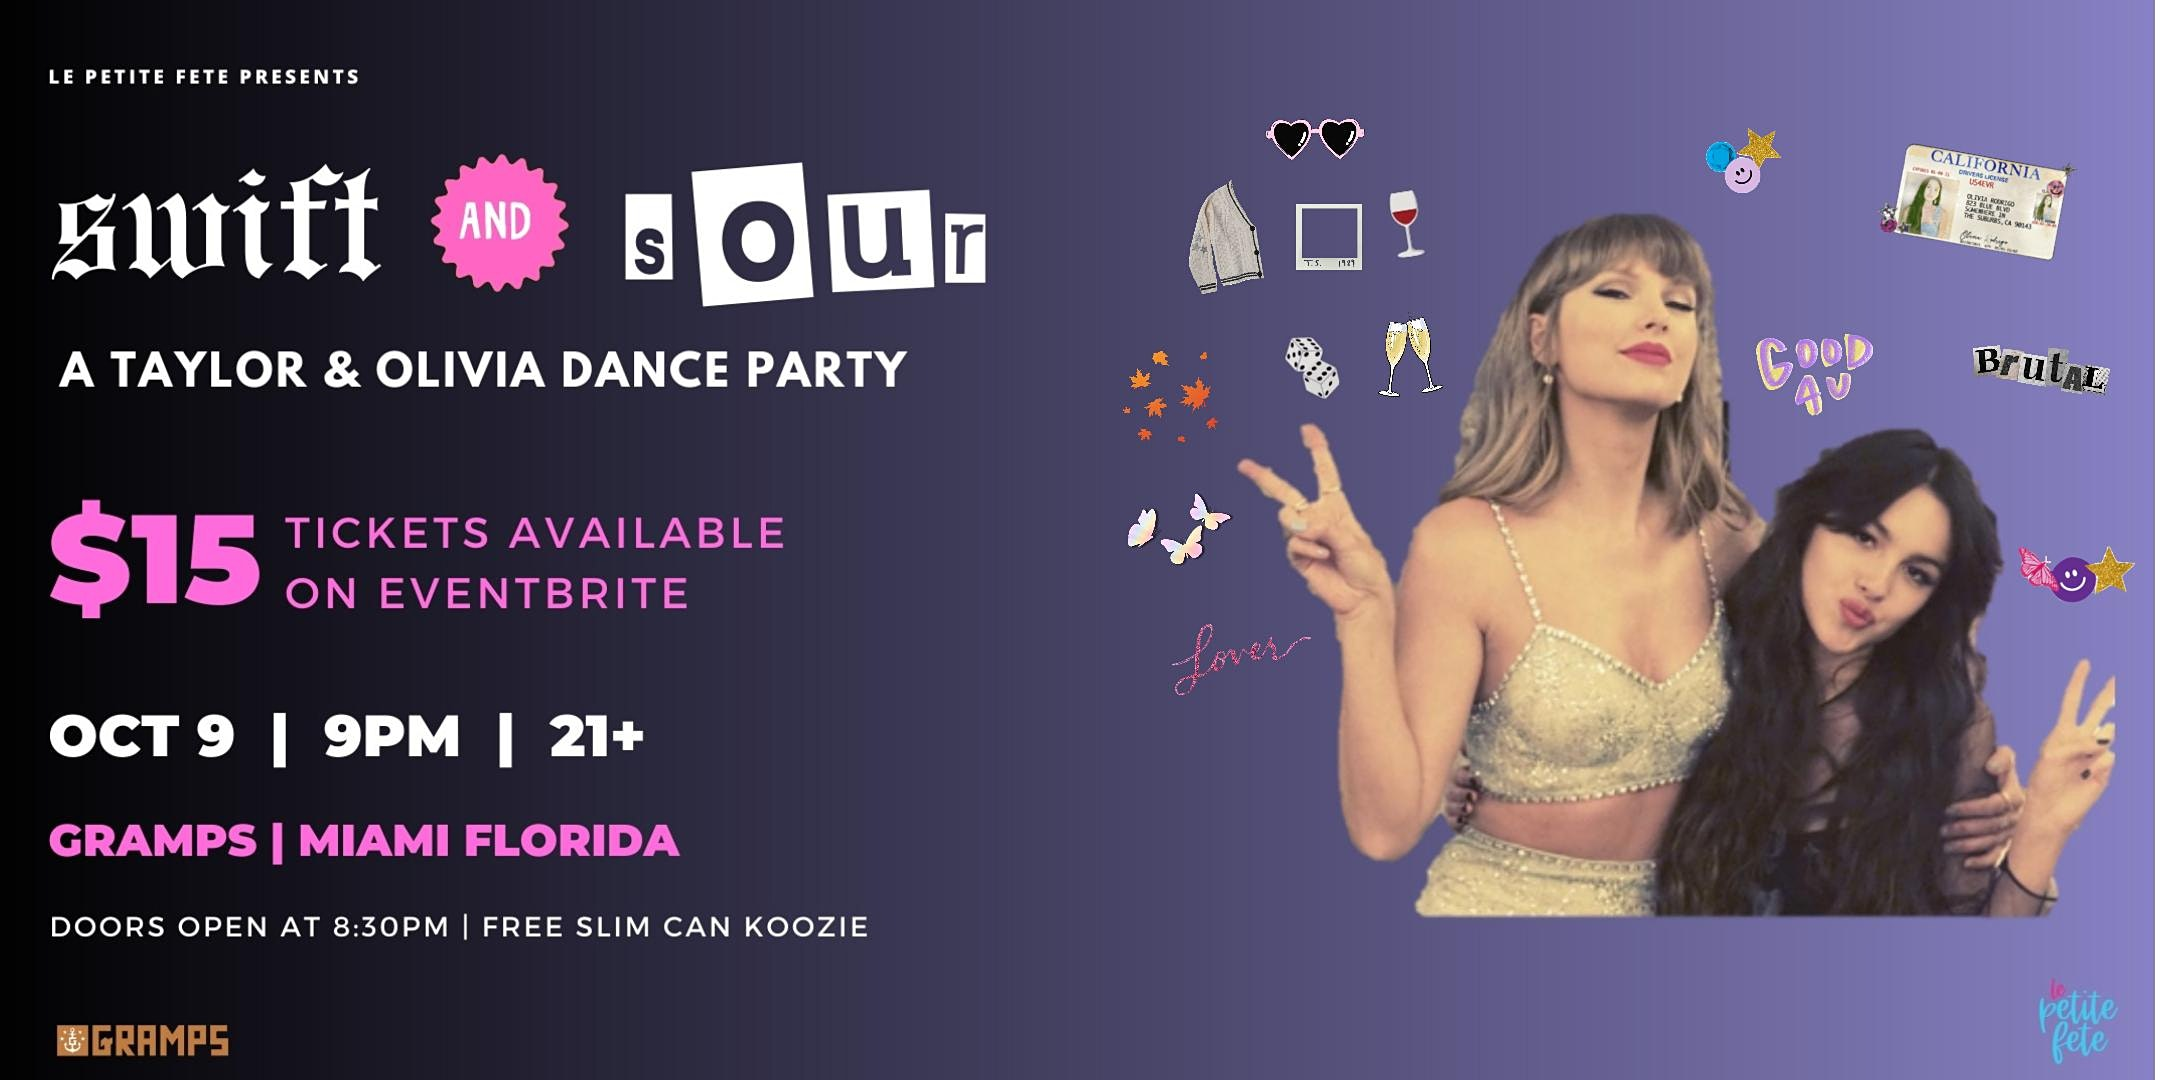 Swift & Sour: A Taylor and Olivia Dance Party